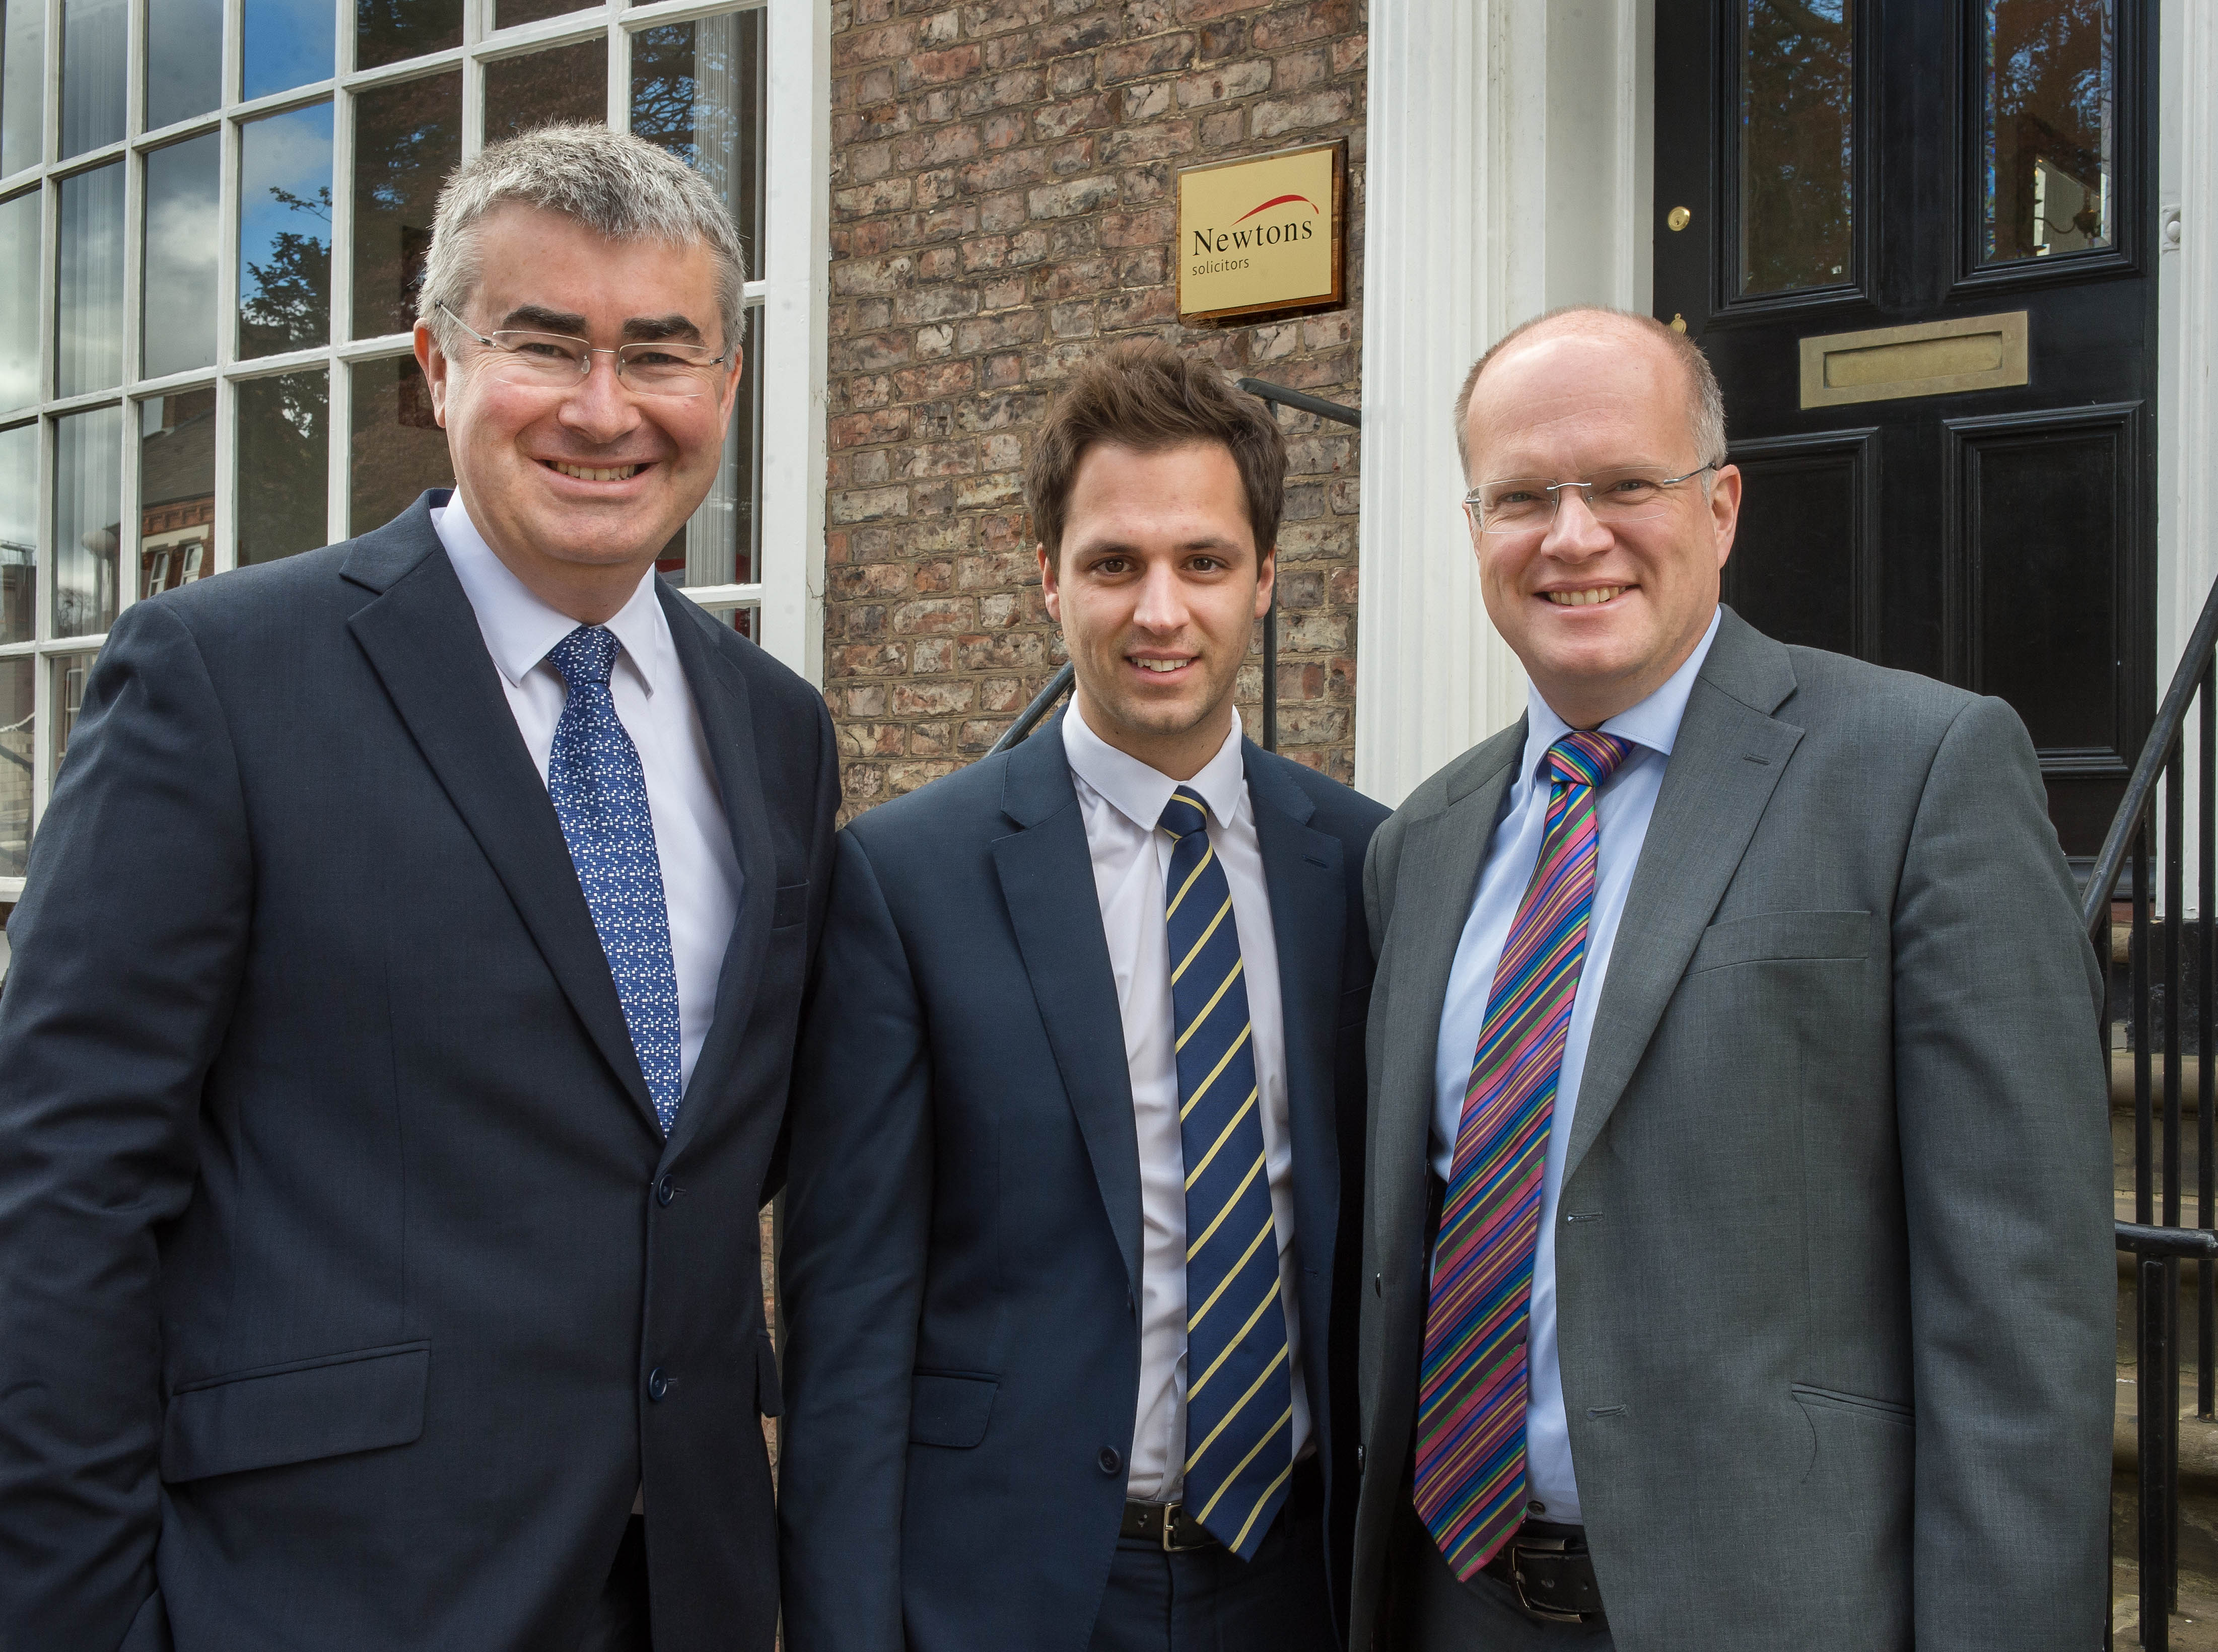 Chris Newton, Oliver Hebden and Paul Hargreaves of Newtons Solicitors